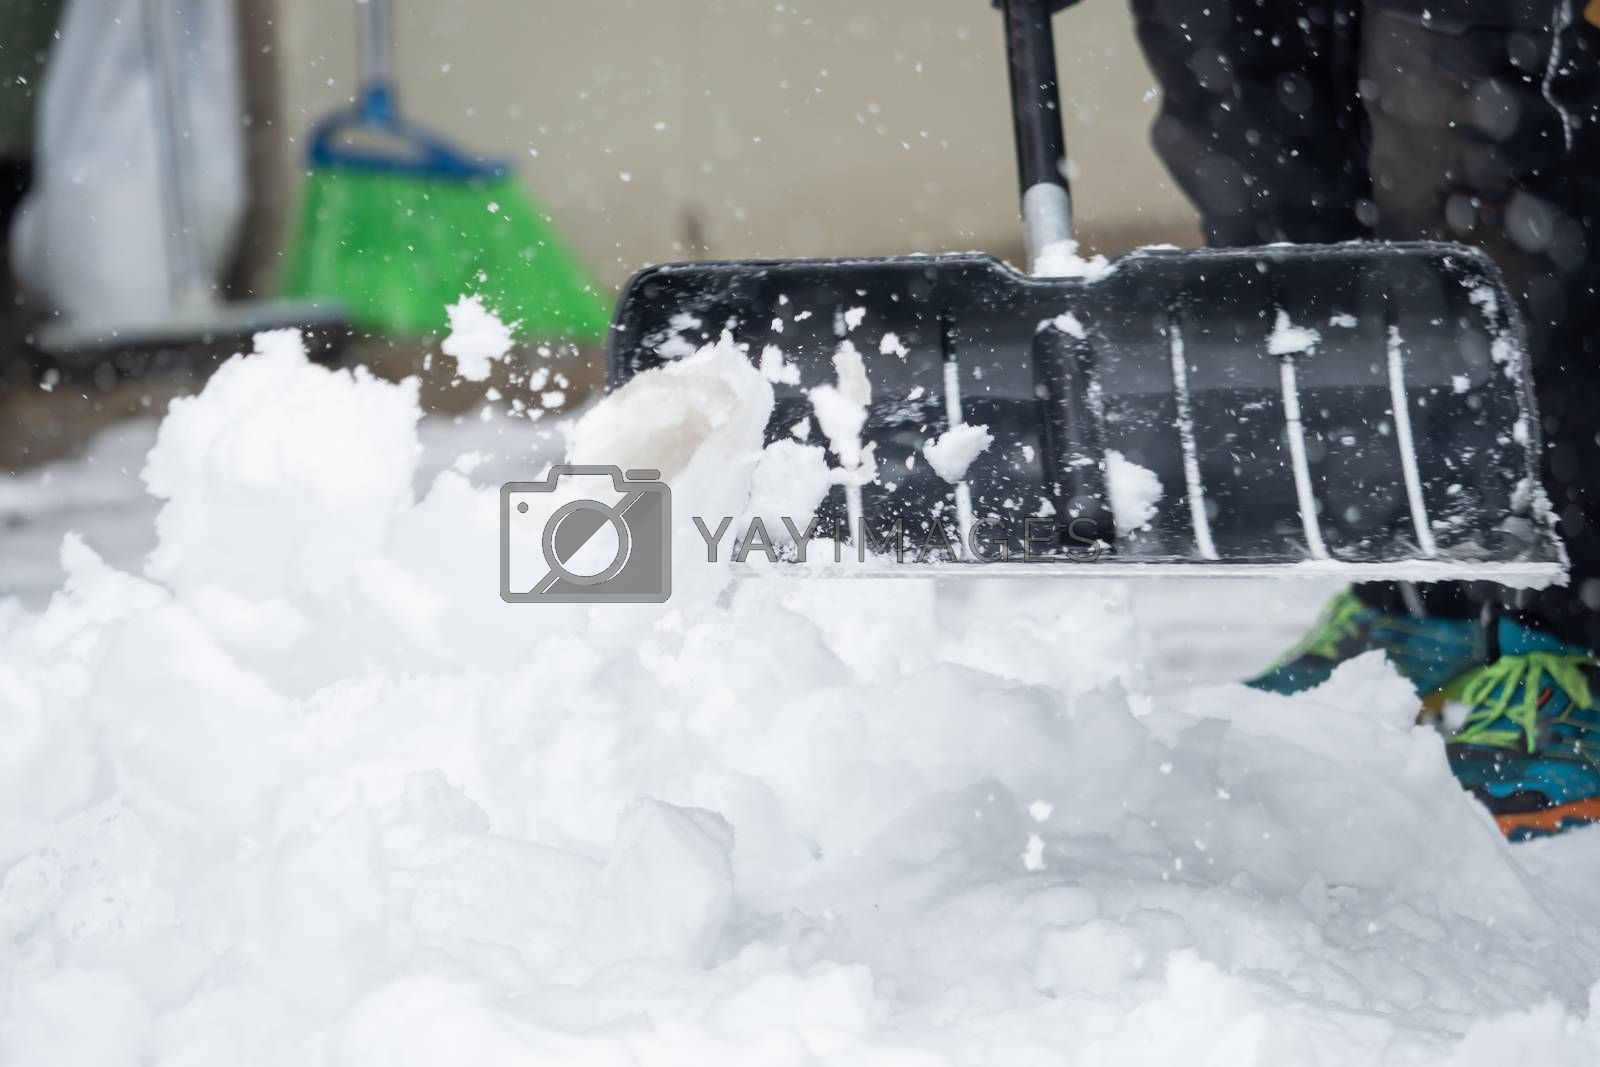 Someone is  shoveling snow outside in winter while it is snowing by Sandra Fotodesign